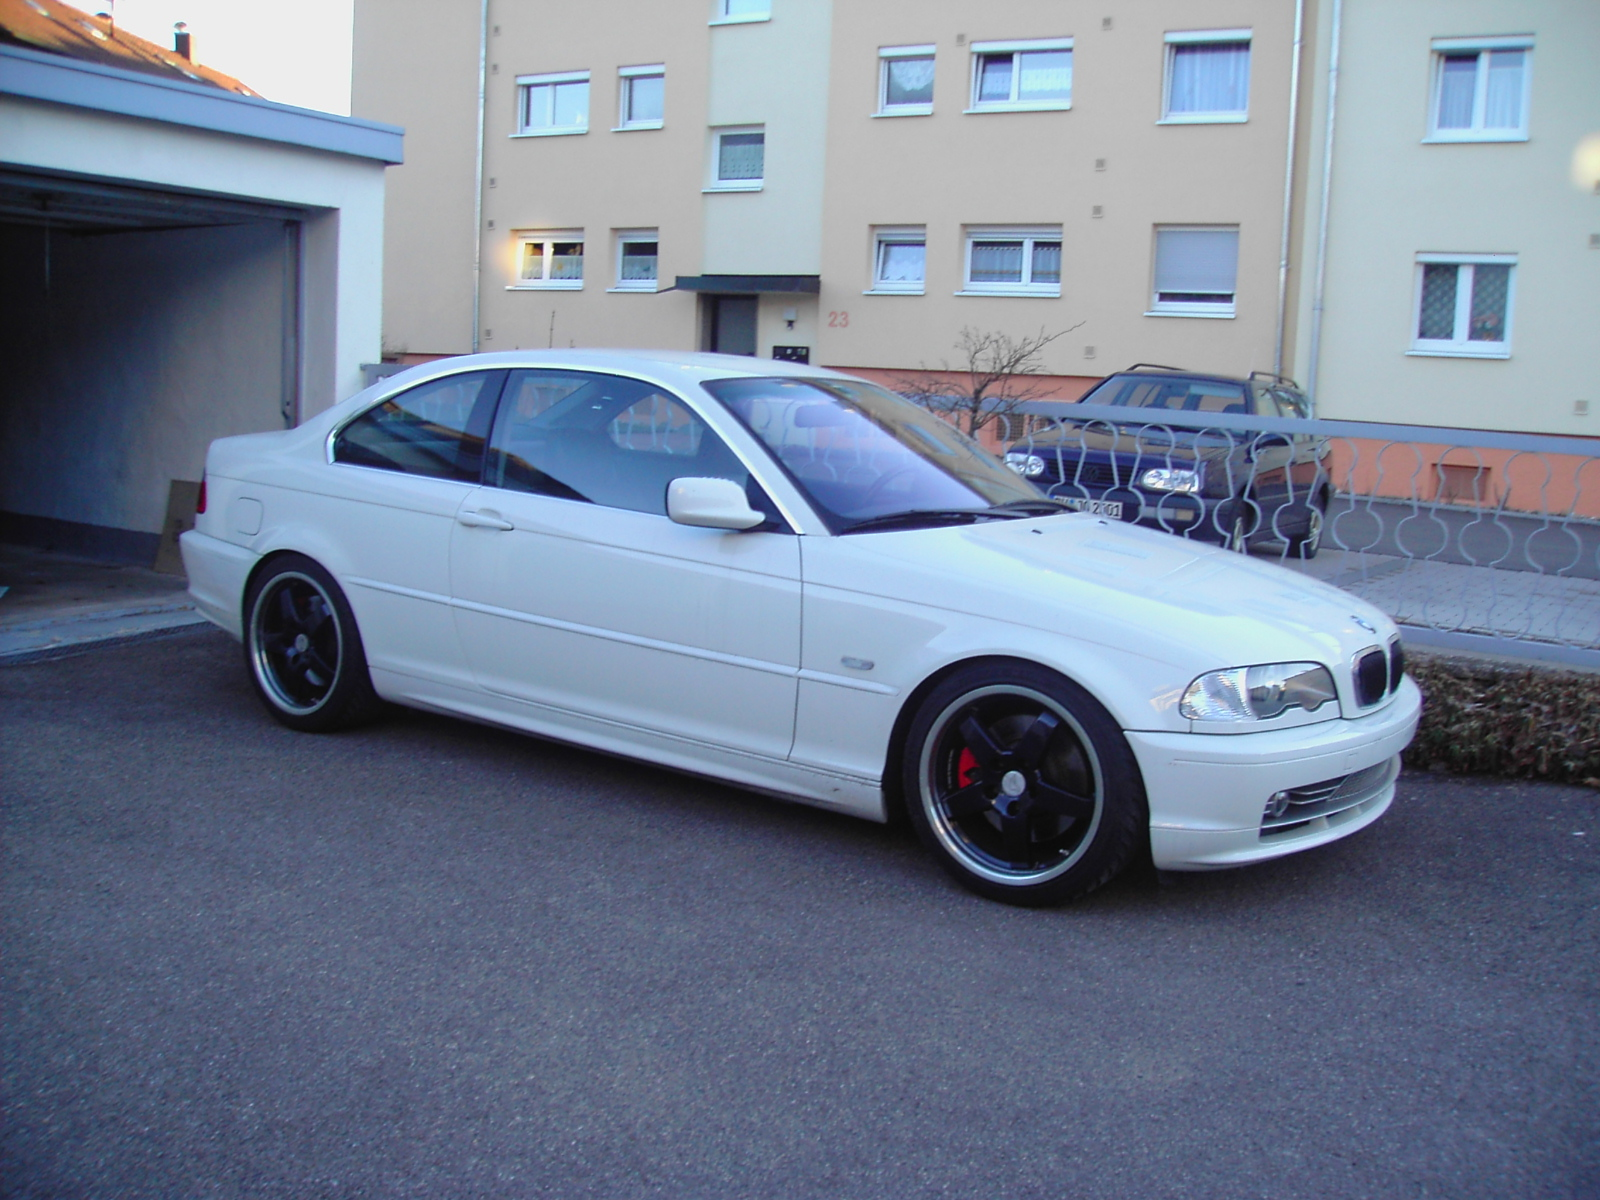 Bmw 3 Series 2002 Review Amazing Pictures And Images Look At The Car